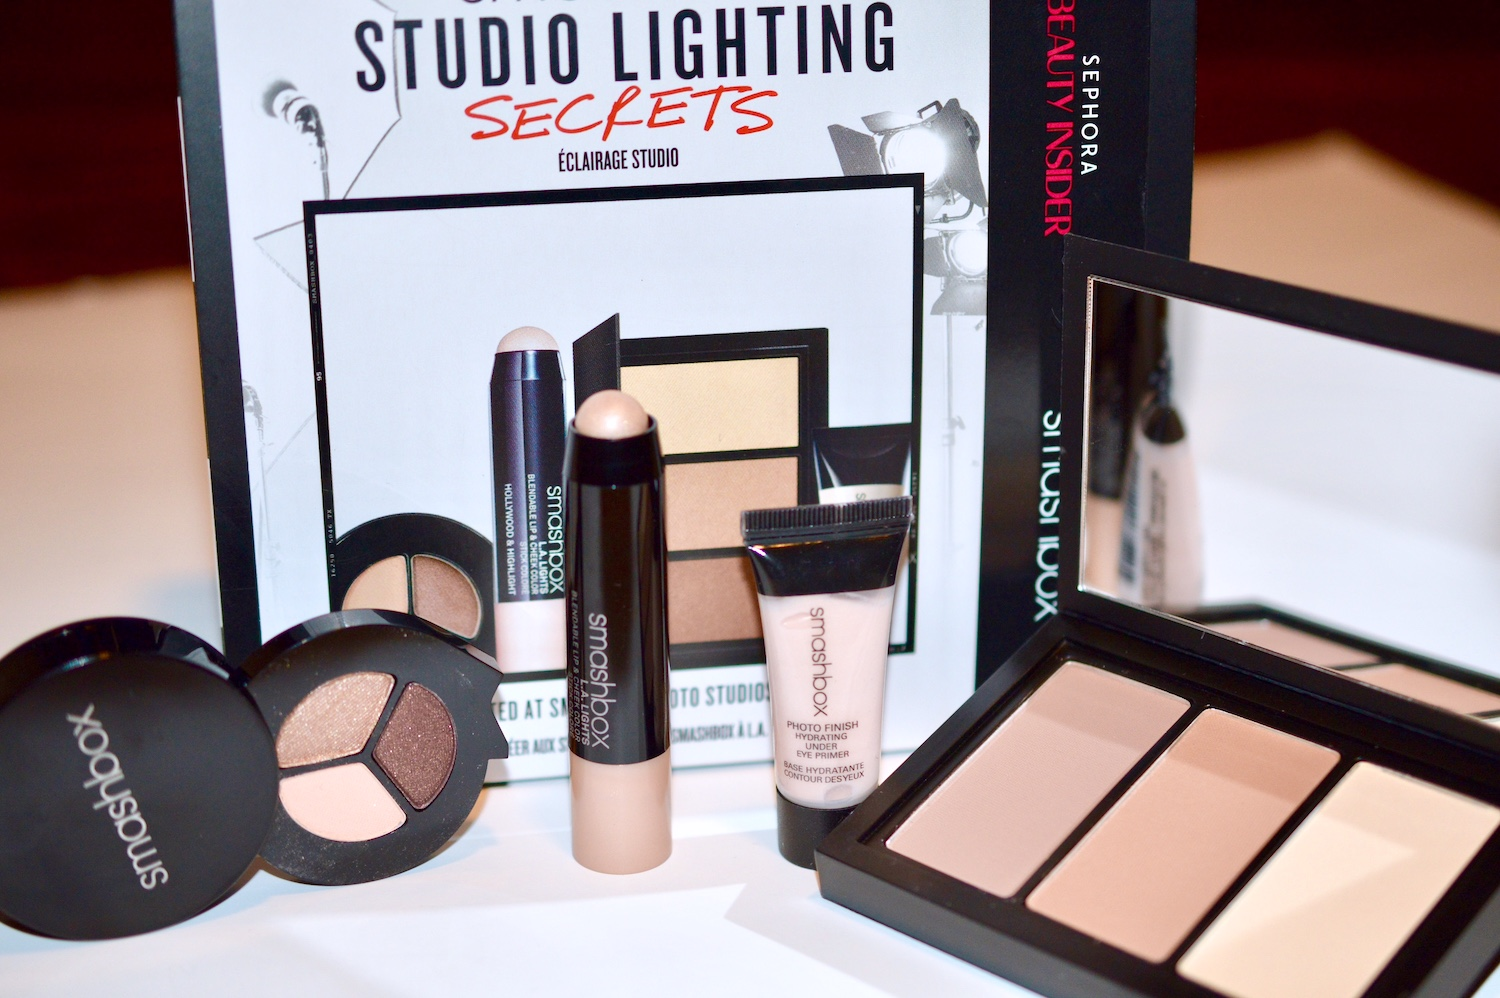 Smashbox Studio Lighting Secrets